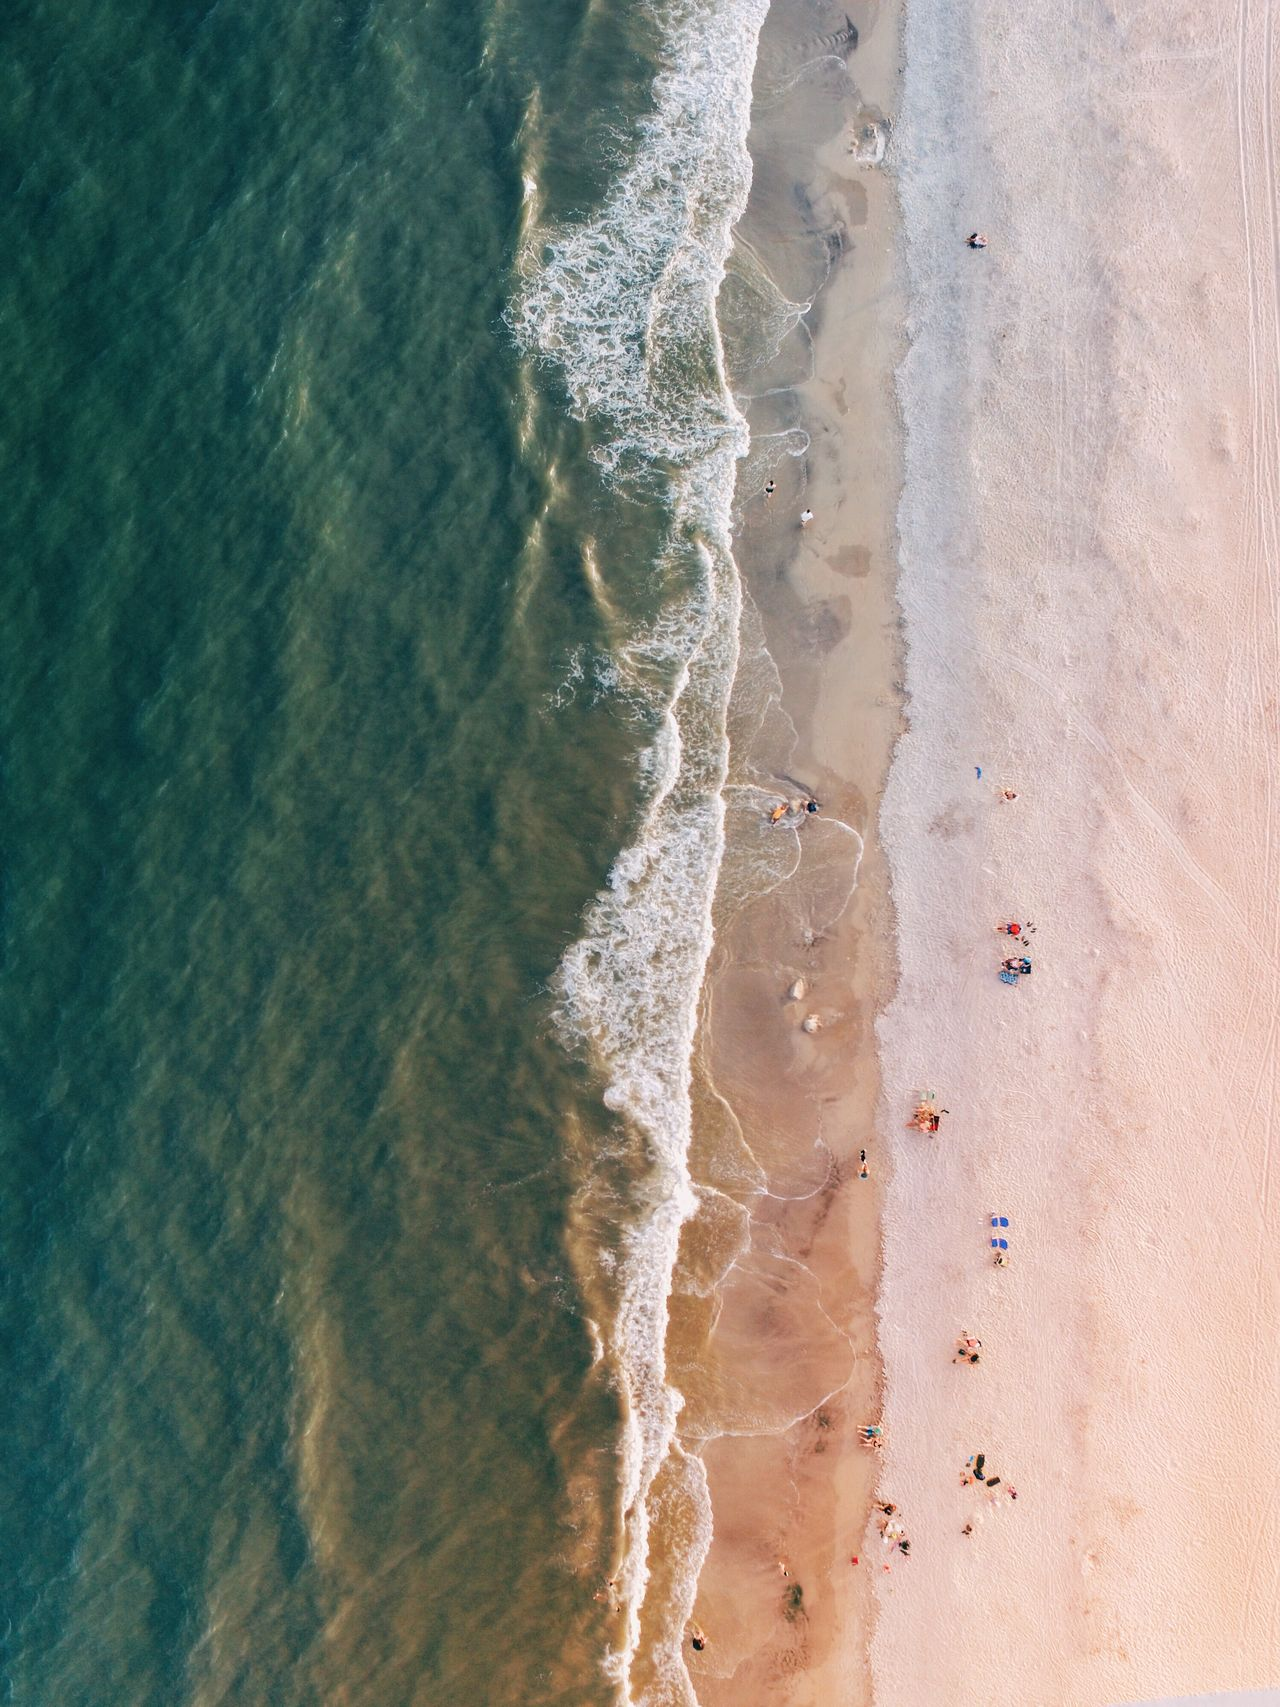 Aerial View Drone  Dronephotography Beach Sea Water Shore Surf High Angle View Sand Nature Wave Scenics Beauty In Nature Coastline Outdoors Summer Day Tranquility Vacations Tranquil Scene Ocean No People A Bird's Eye View